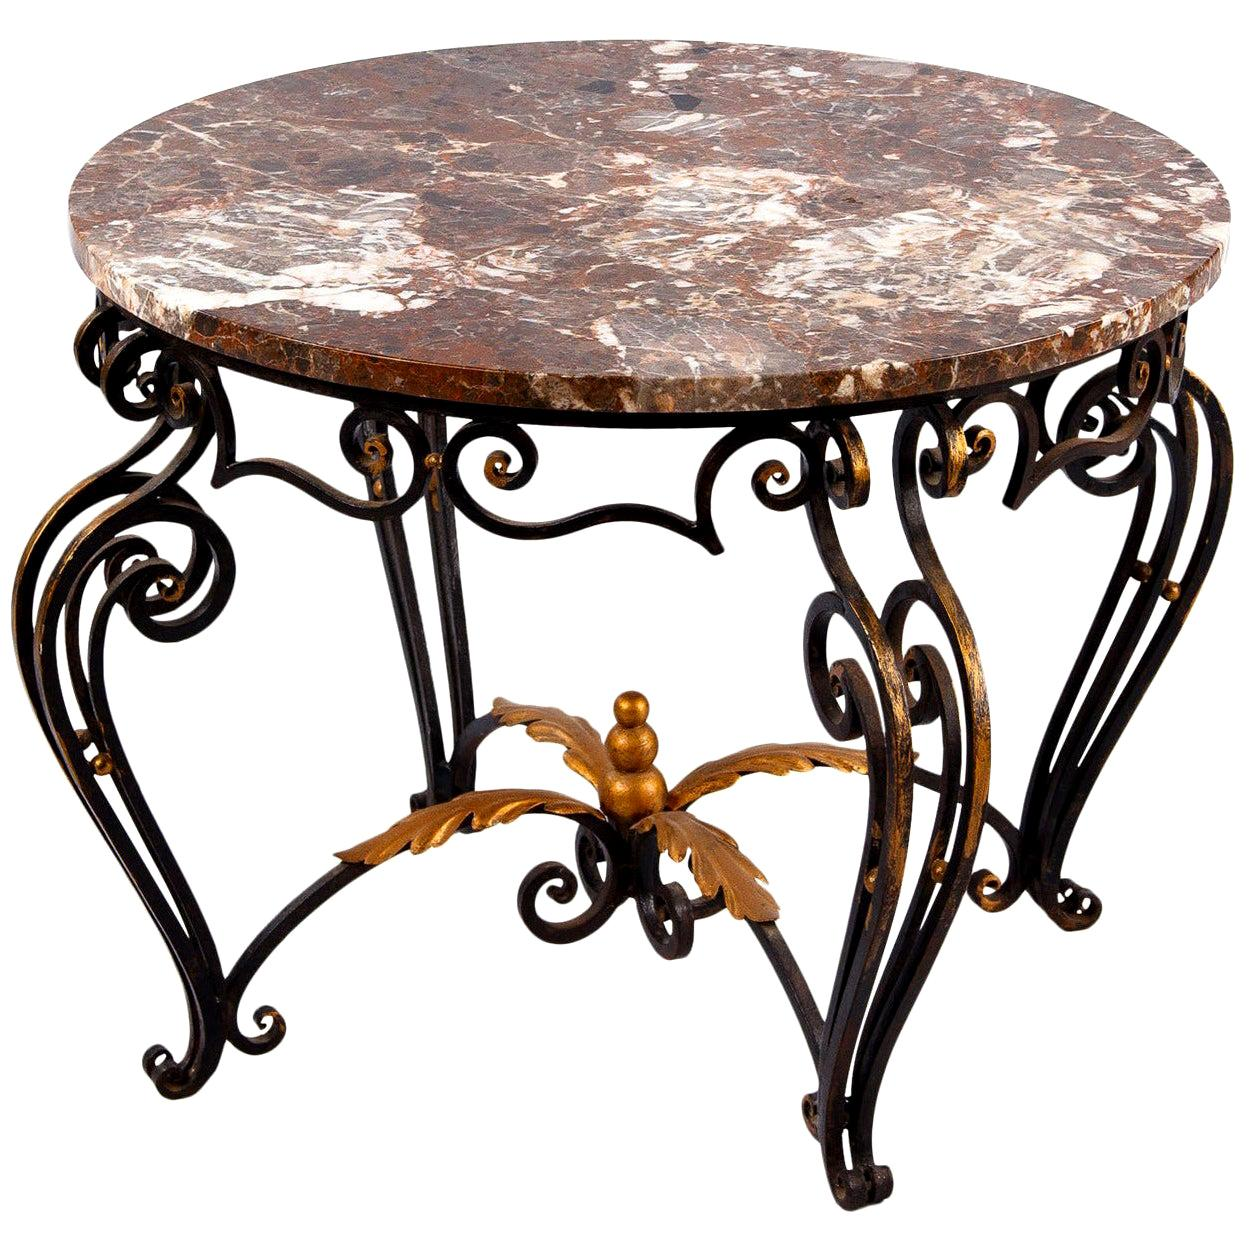 French Art Deco Iron/Marble Coffee Table Attributed to Robert Merceris, 1940s